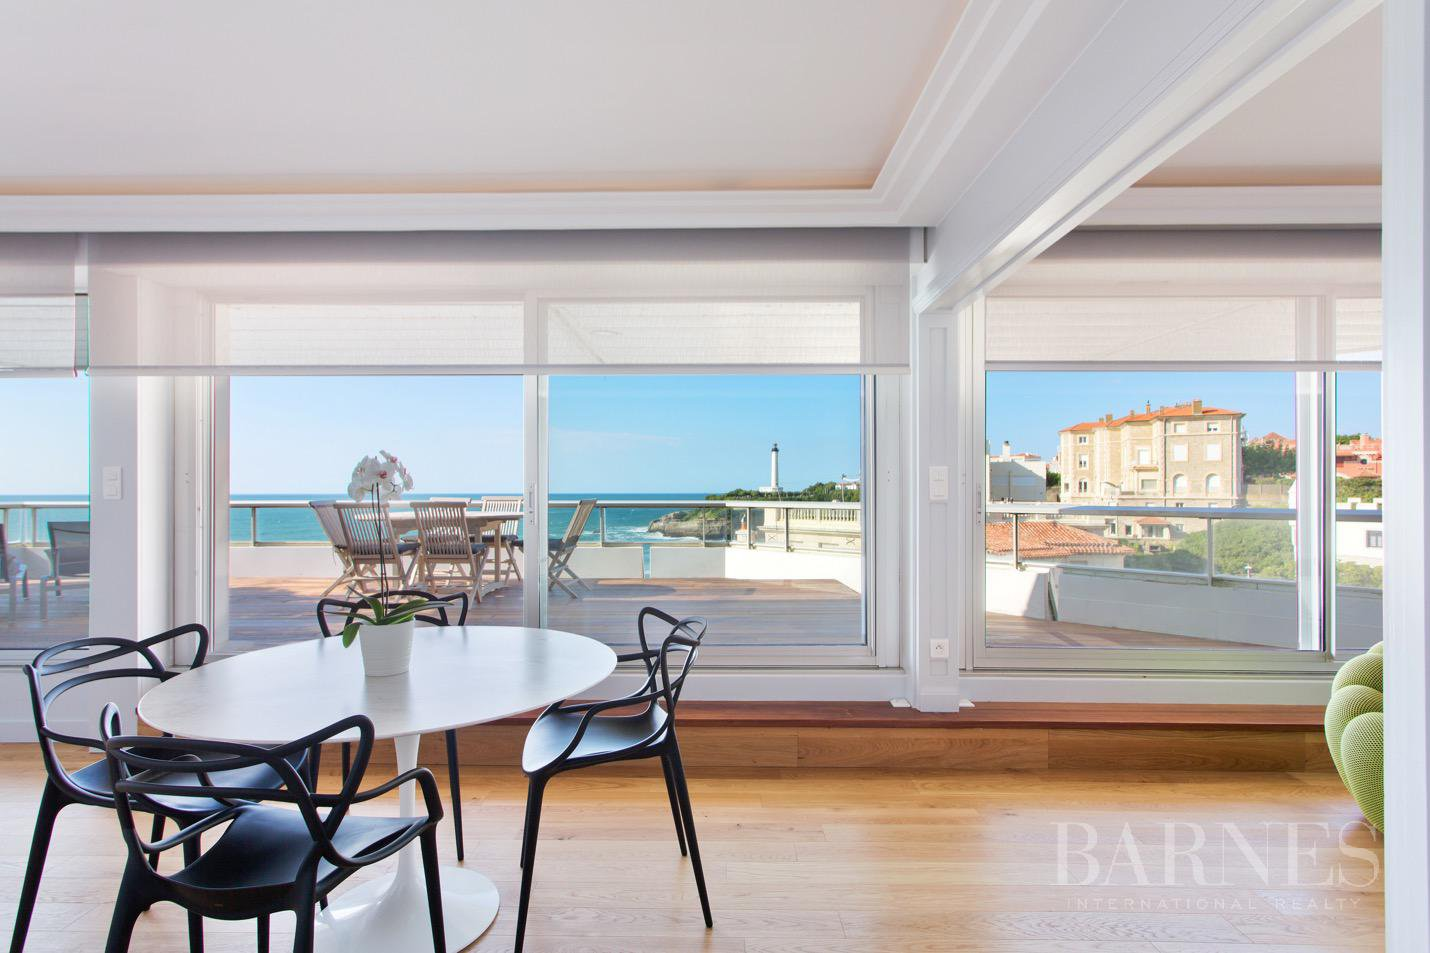 MIRAMAR - APARTMENT WITH TERRACE, OCEAN AND LIGHT HOUSE VIEW picture 7